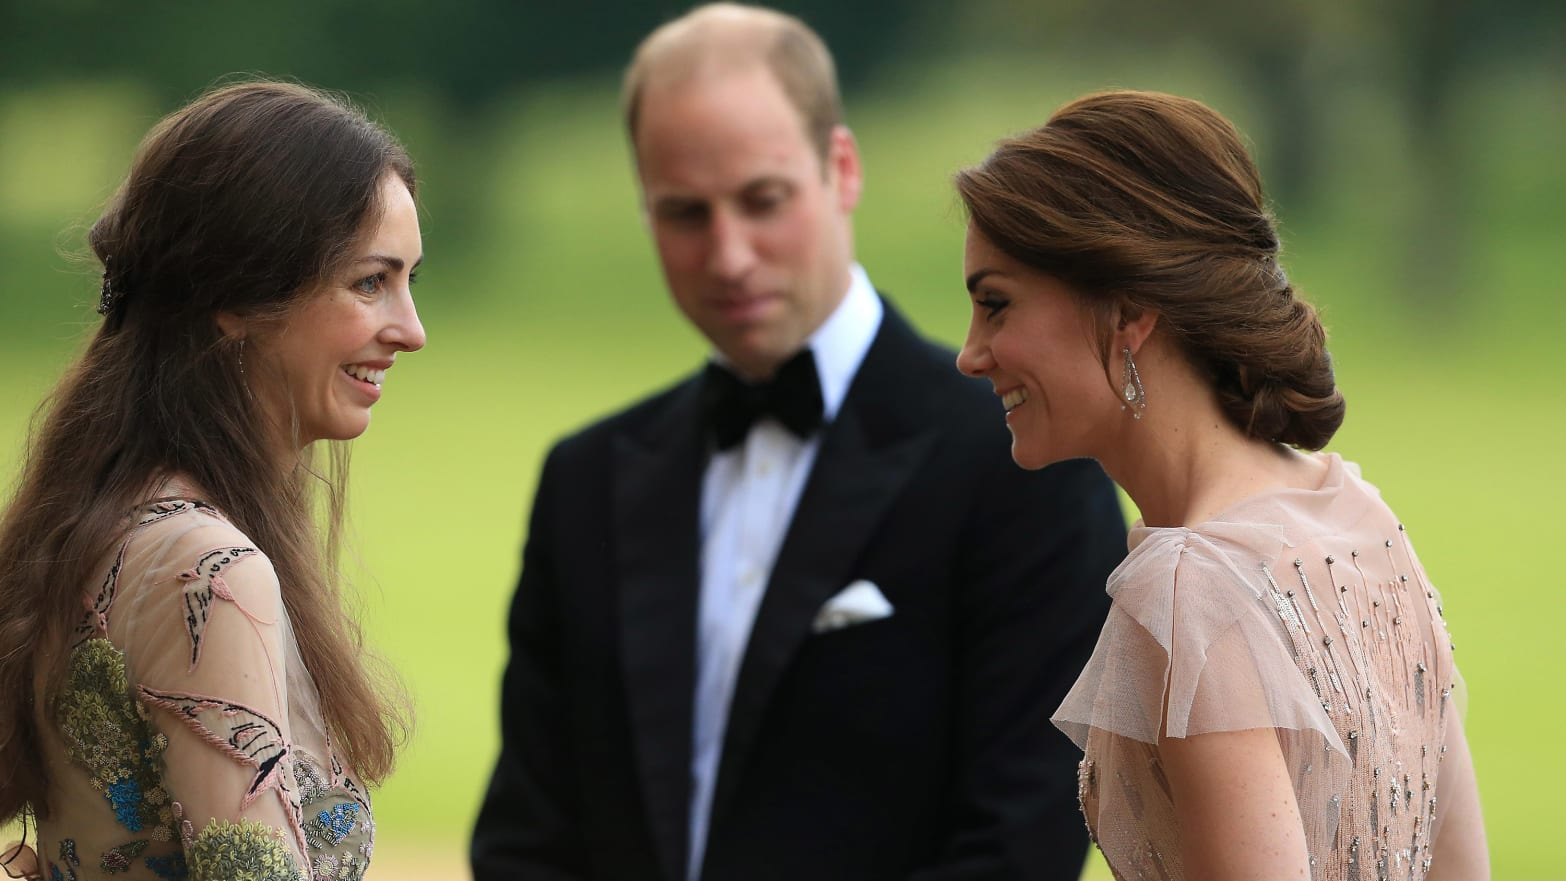 Kate Middleton's Alleged Feud With Former Model Rose Hanbury Is the Weirdest Royal Story of the Year